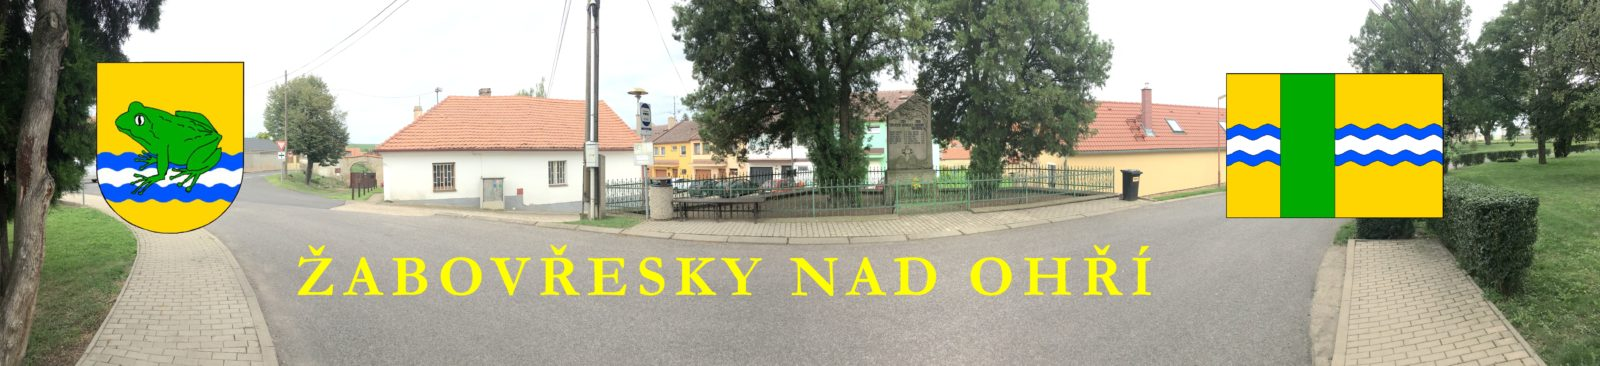 Obec Žabovřesky nad Ohří